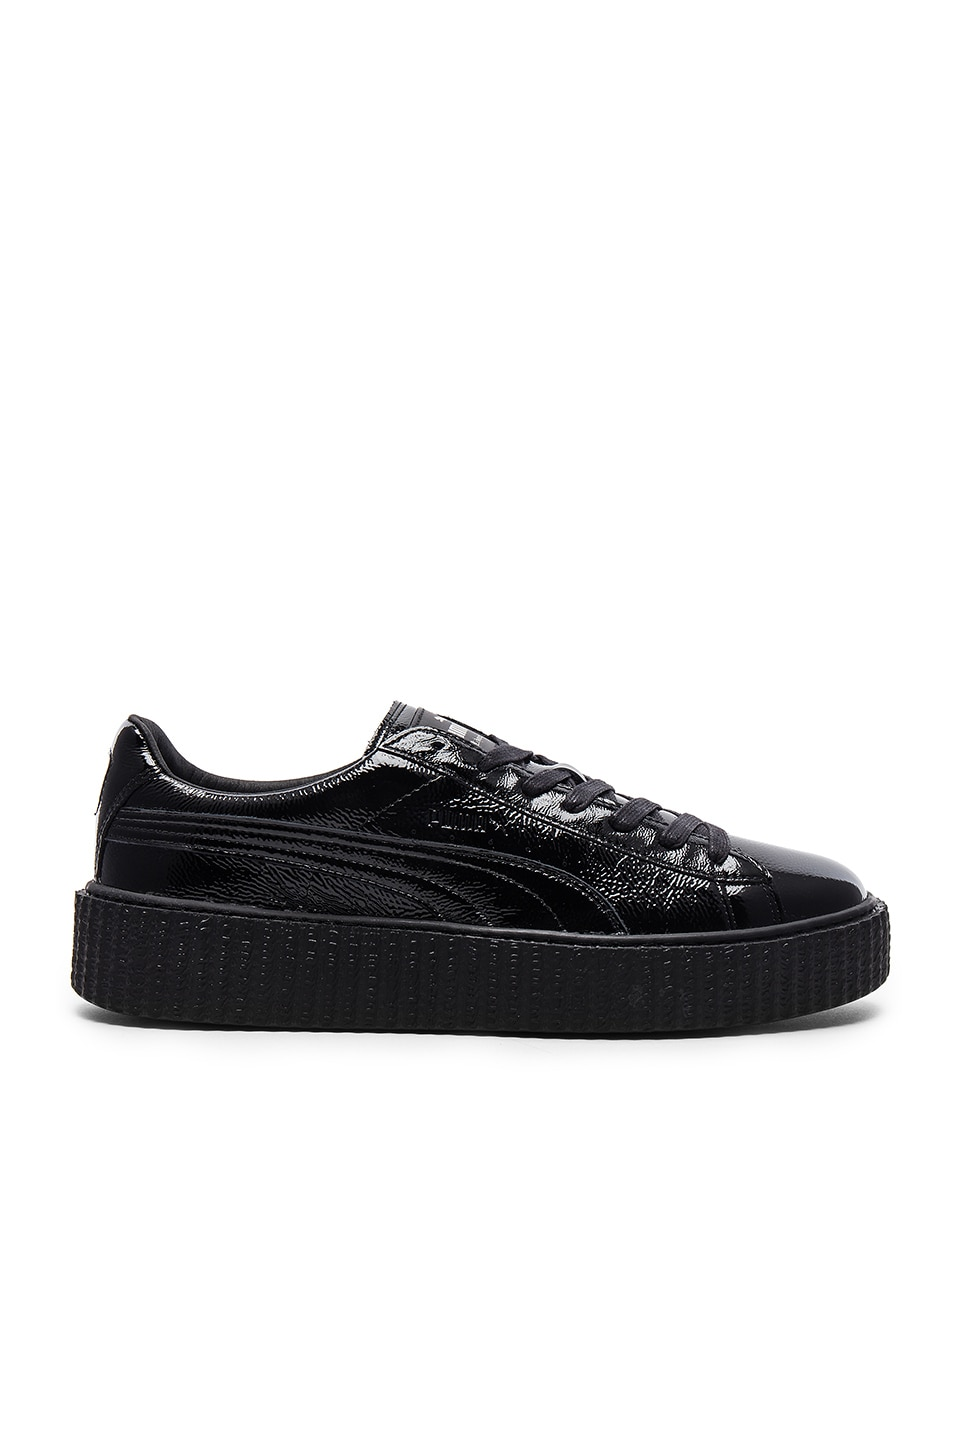 competitive price 34bd6 a56be Fenty by Puma Cracked Leather Creeper in Black & Black ...